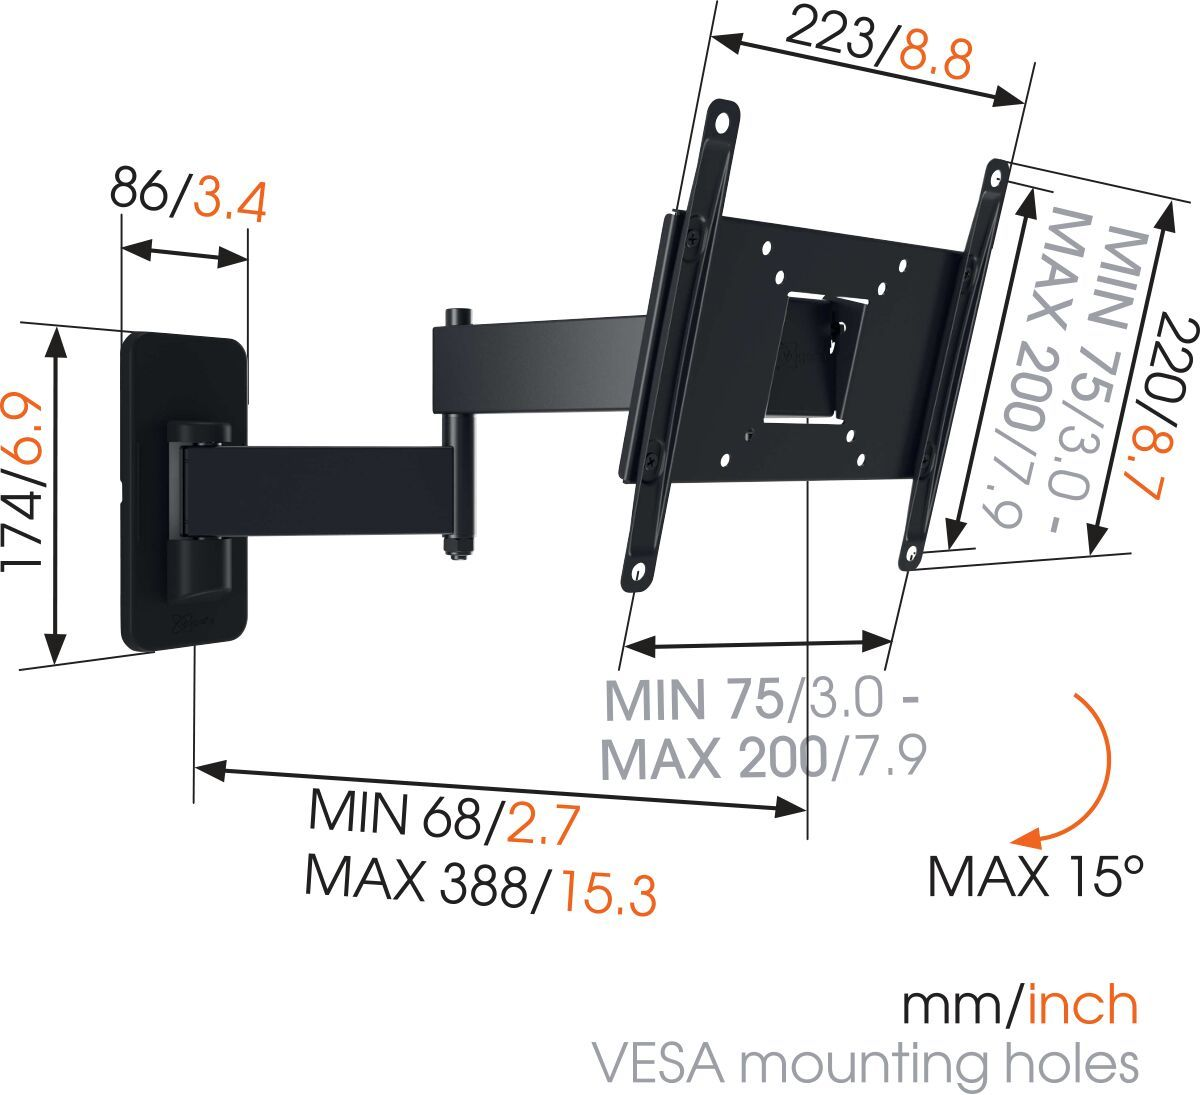 Vogel's MA 2040 (A1) Full-Motion TV Wall Mount - Suitable for 19 up to 40 inch TVs - Full motion (up to 180°) - Tilt up to 10° - Dimensions